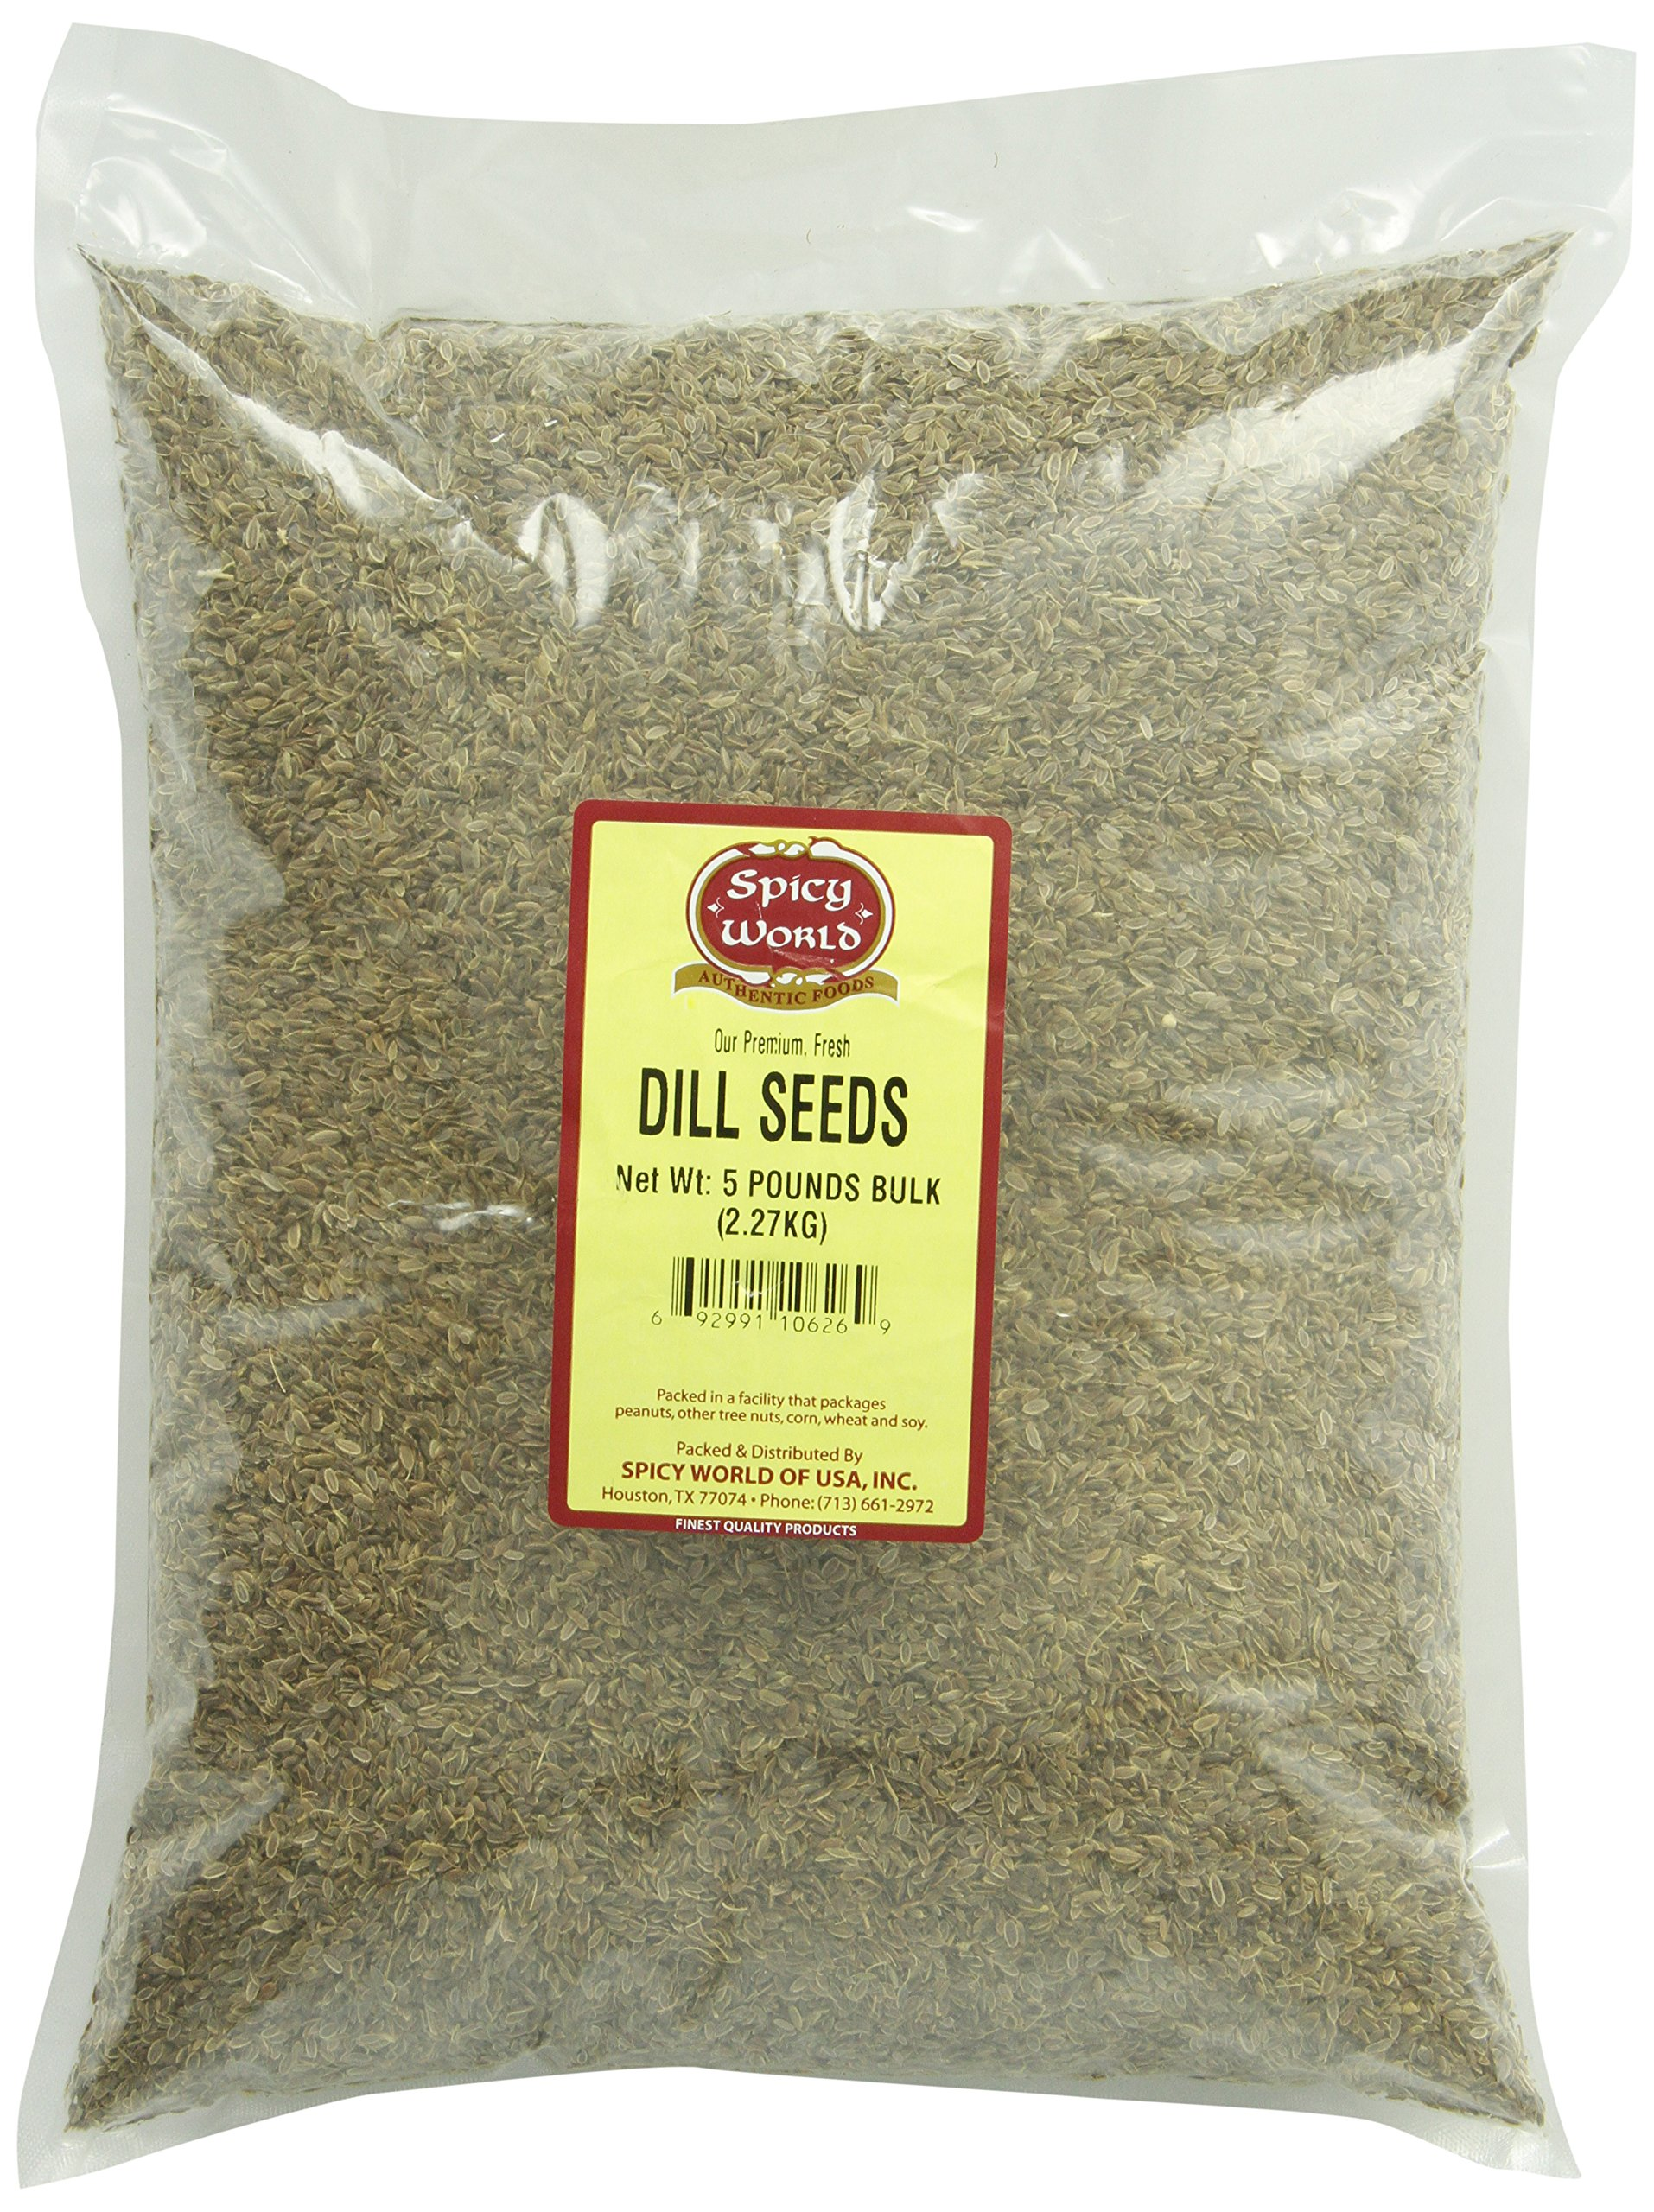 Spicy World Dill Seeds Bulk, 5-Pounds